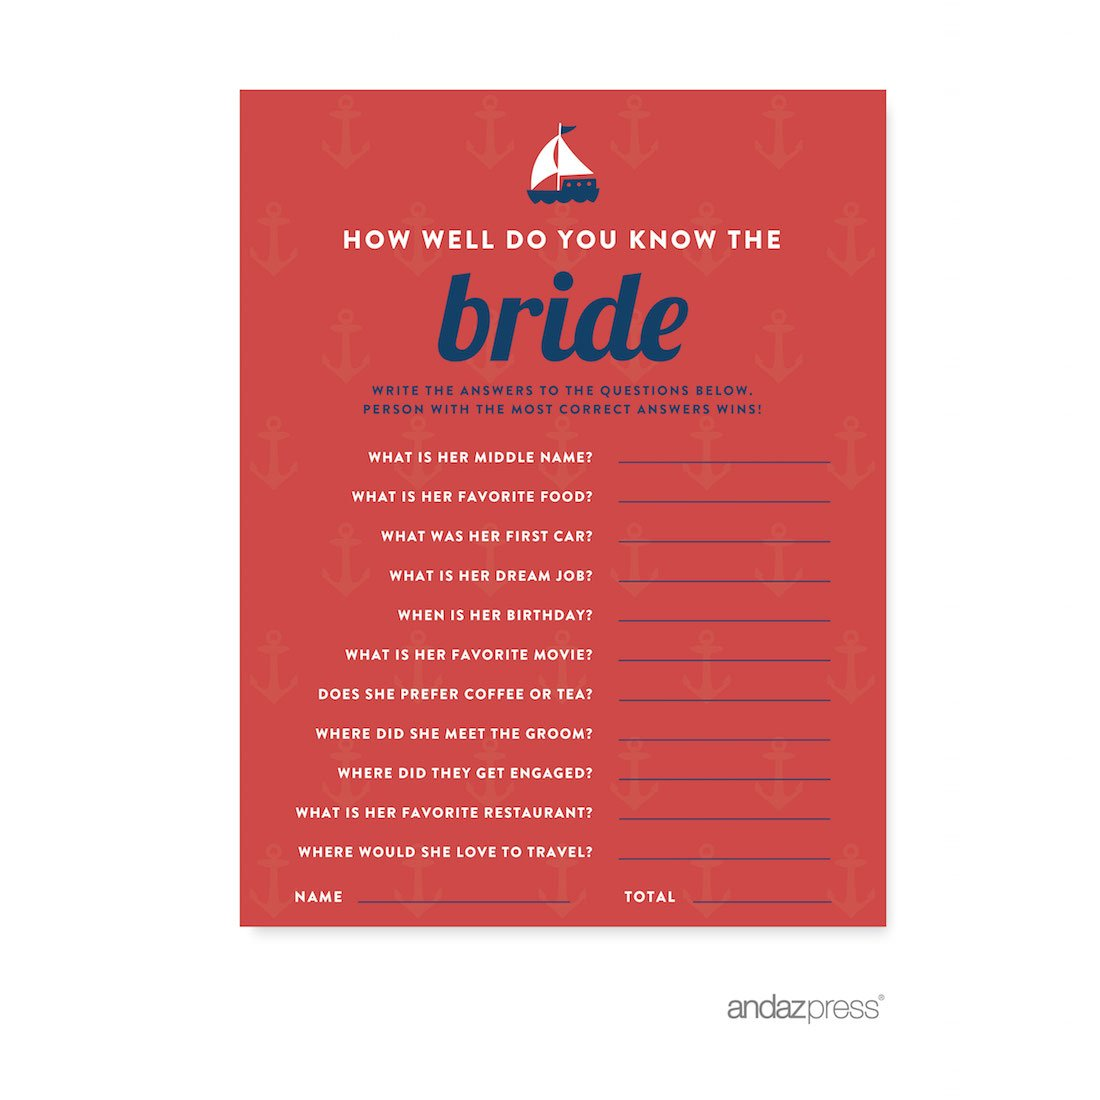 andaz press nautical ocean adventure wedding collection how well do you know the bride